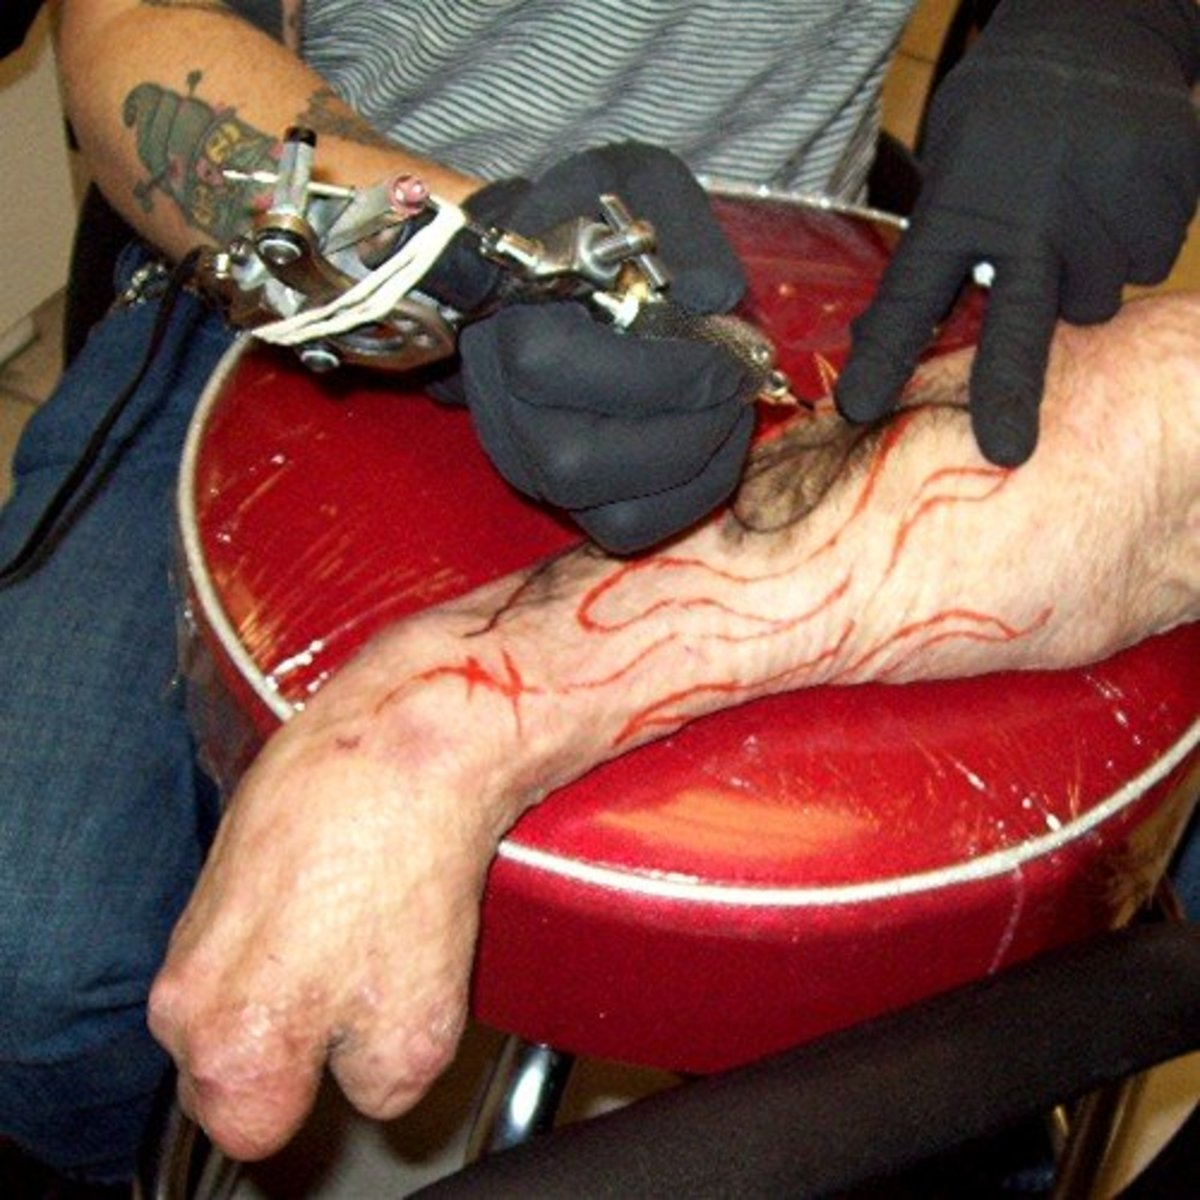 Tattoos on Burned, Scarred, or Grafted Skin